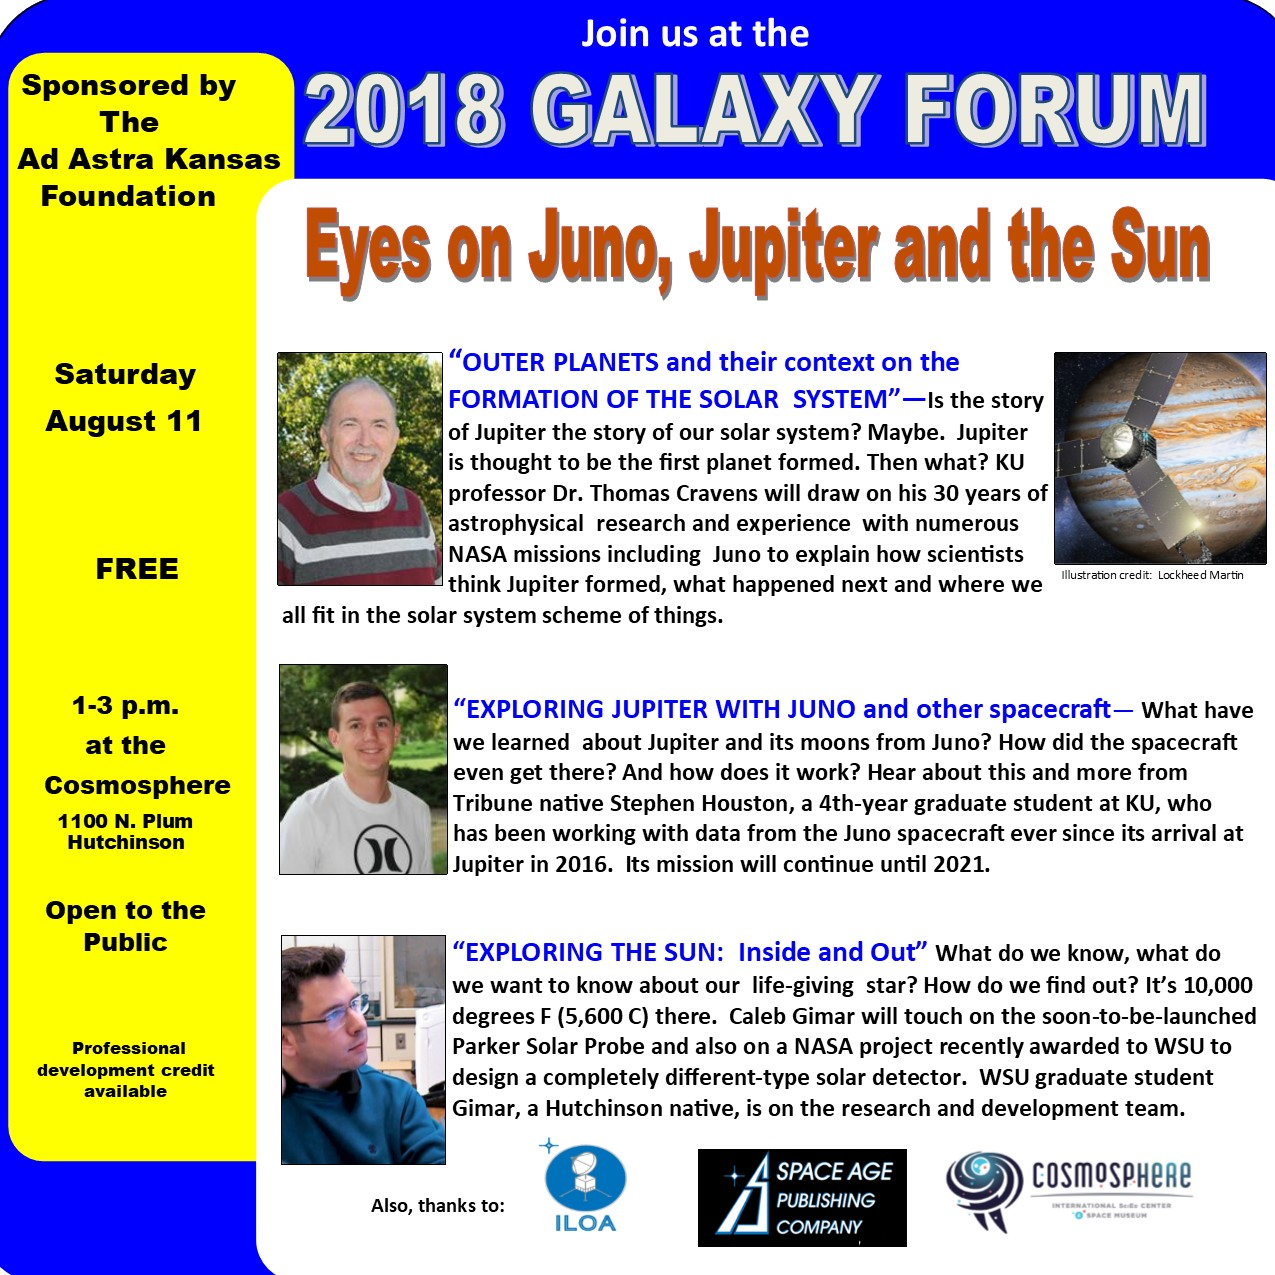 Galaxy Forums 2018 | Galaxy Forum